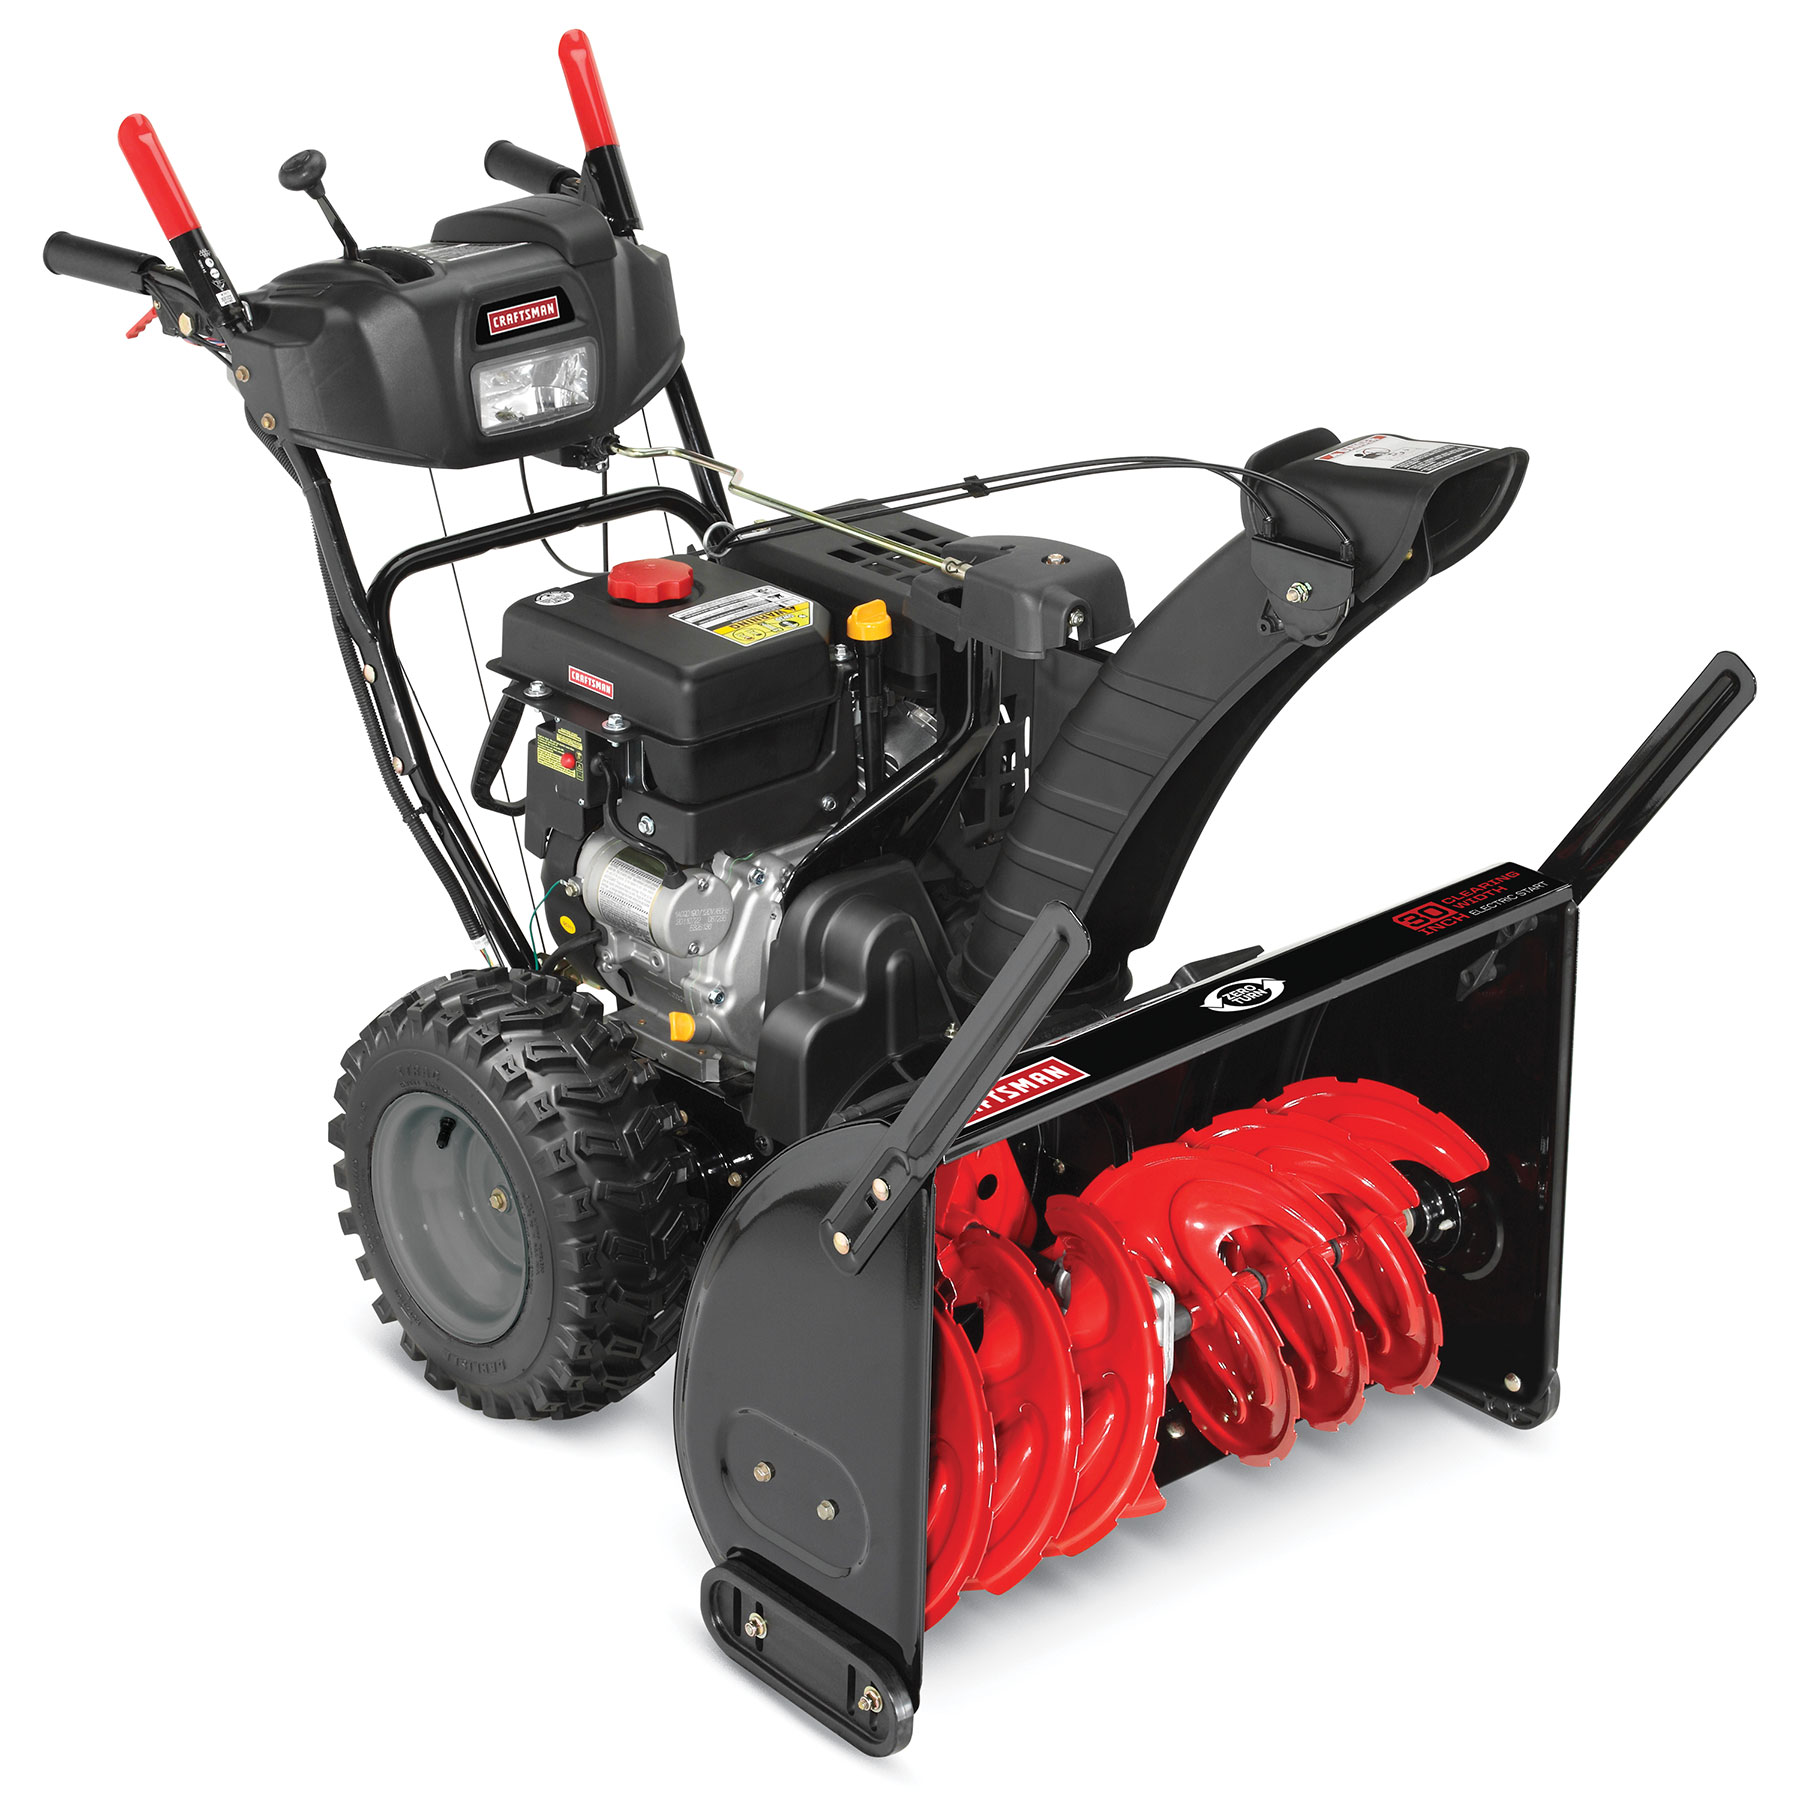 hight resolution of for snow blower wiring diagram basic electronics wiring diagram wildcat snowblower parts diagram wiring